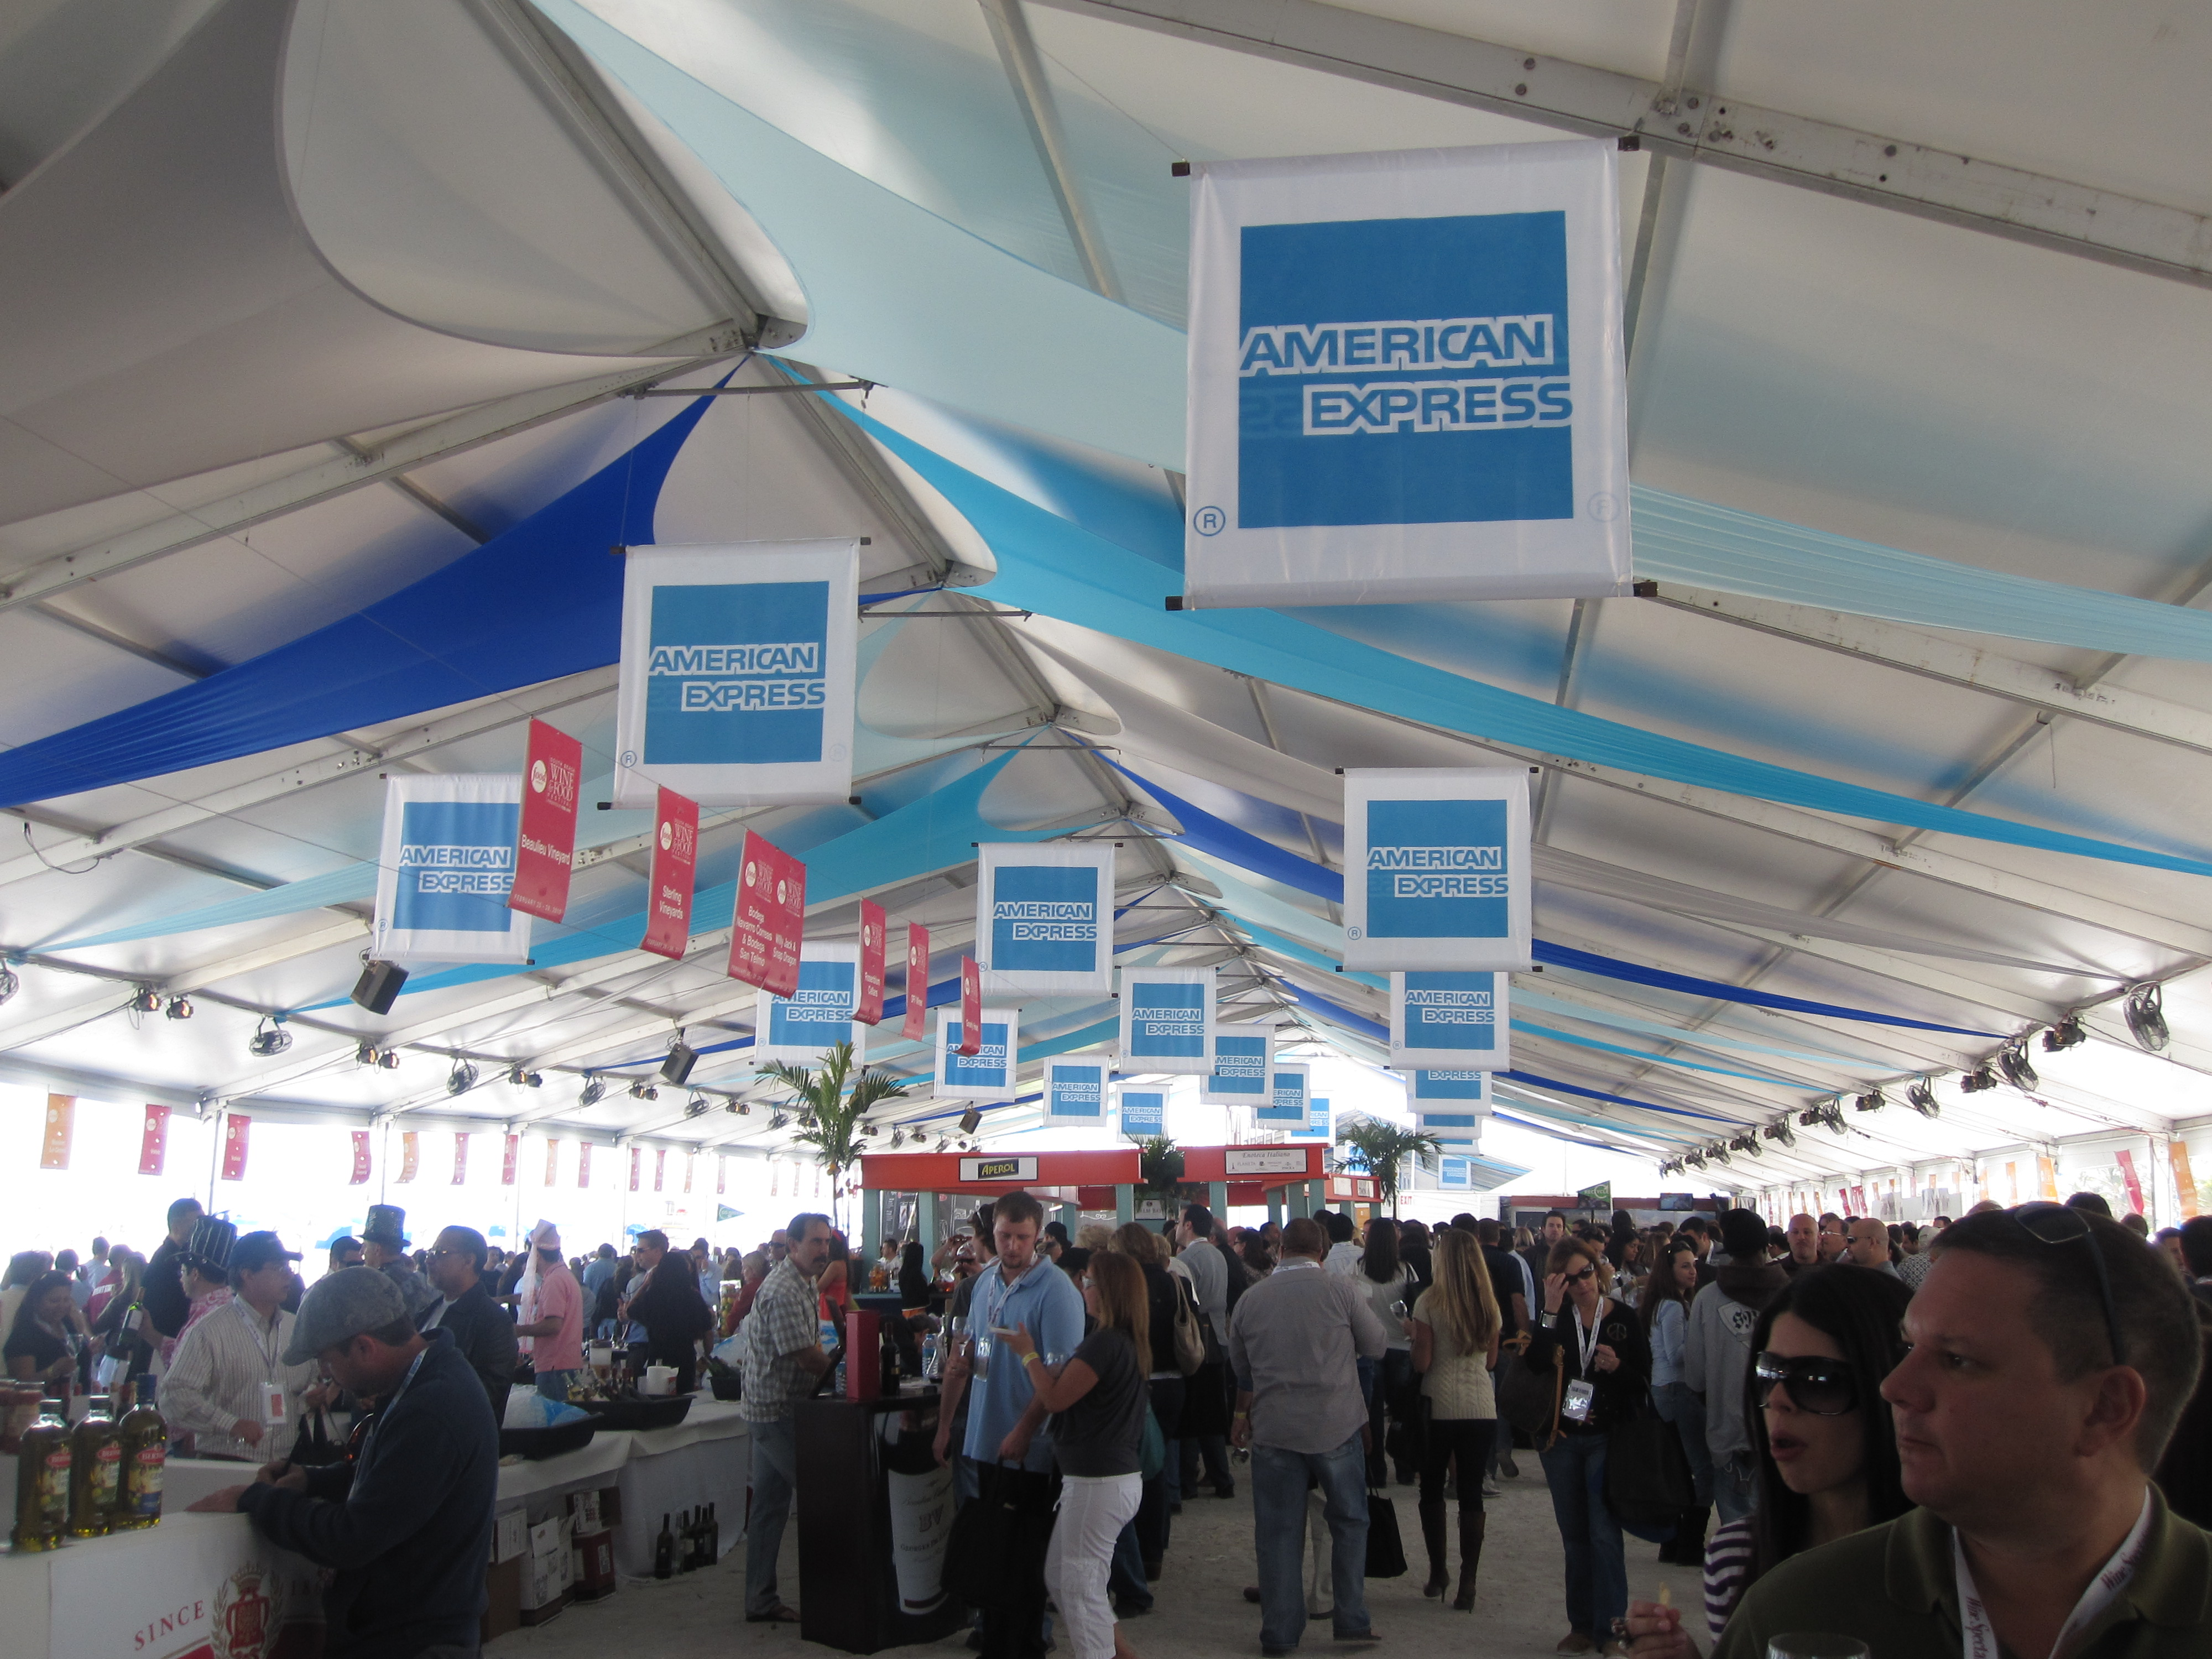 The tasting tents where all the eating and drinking happens.